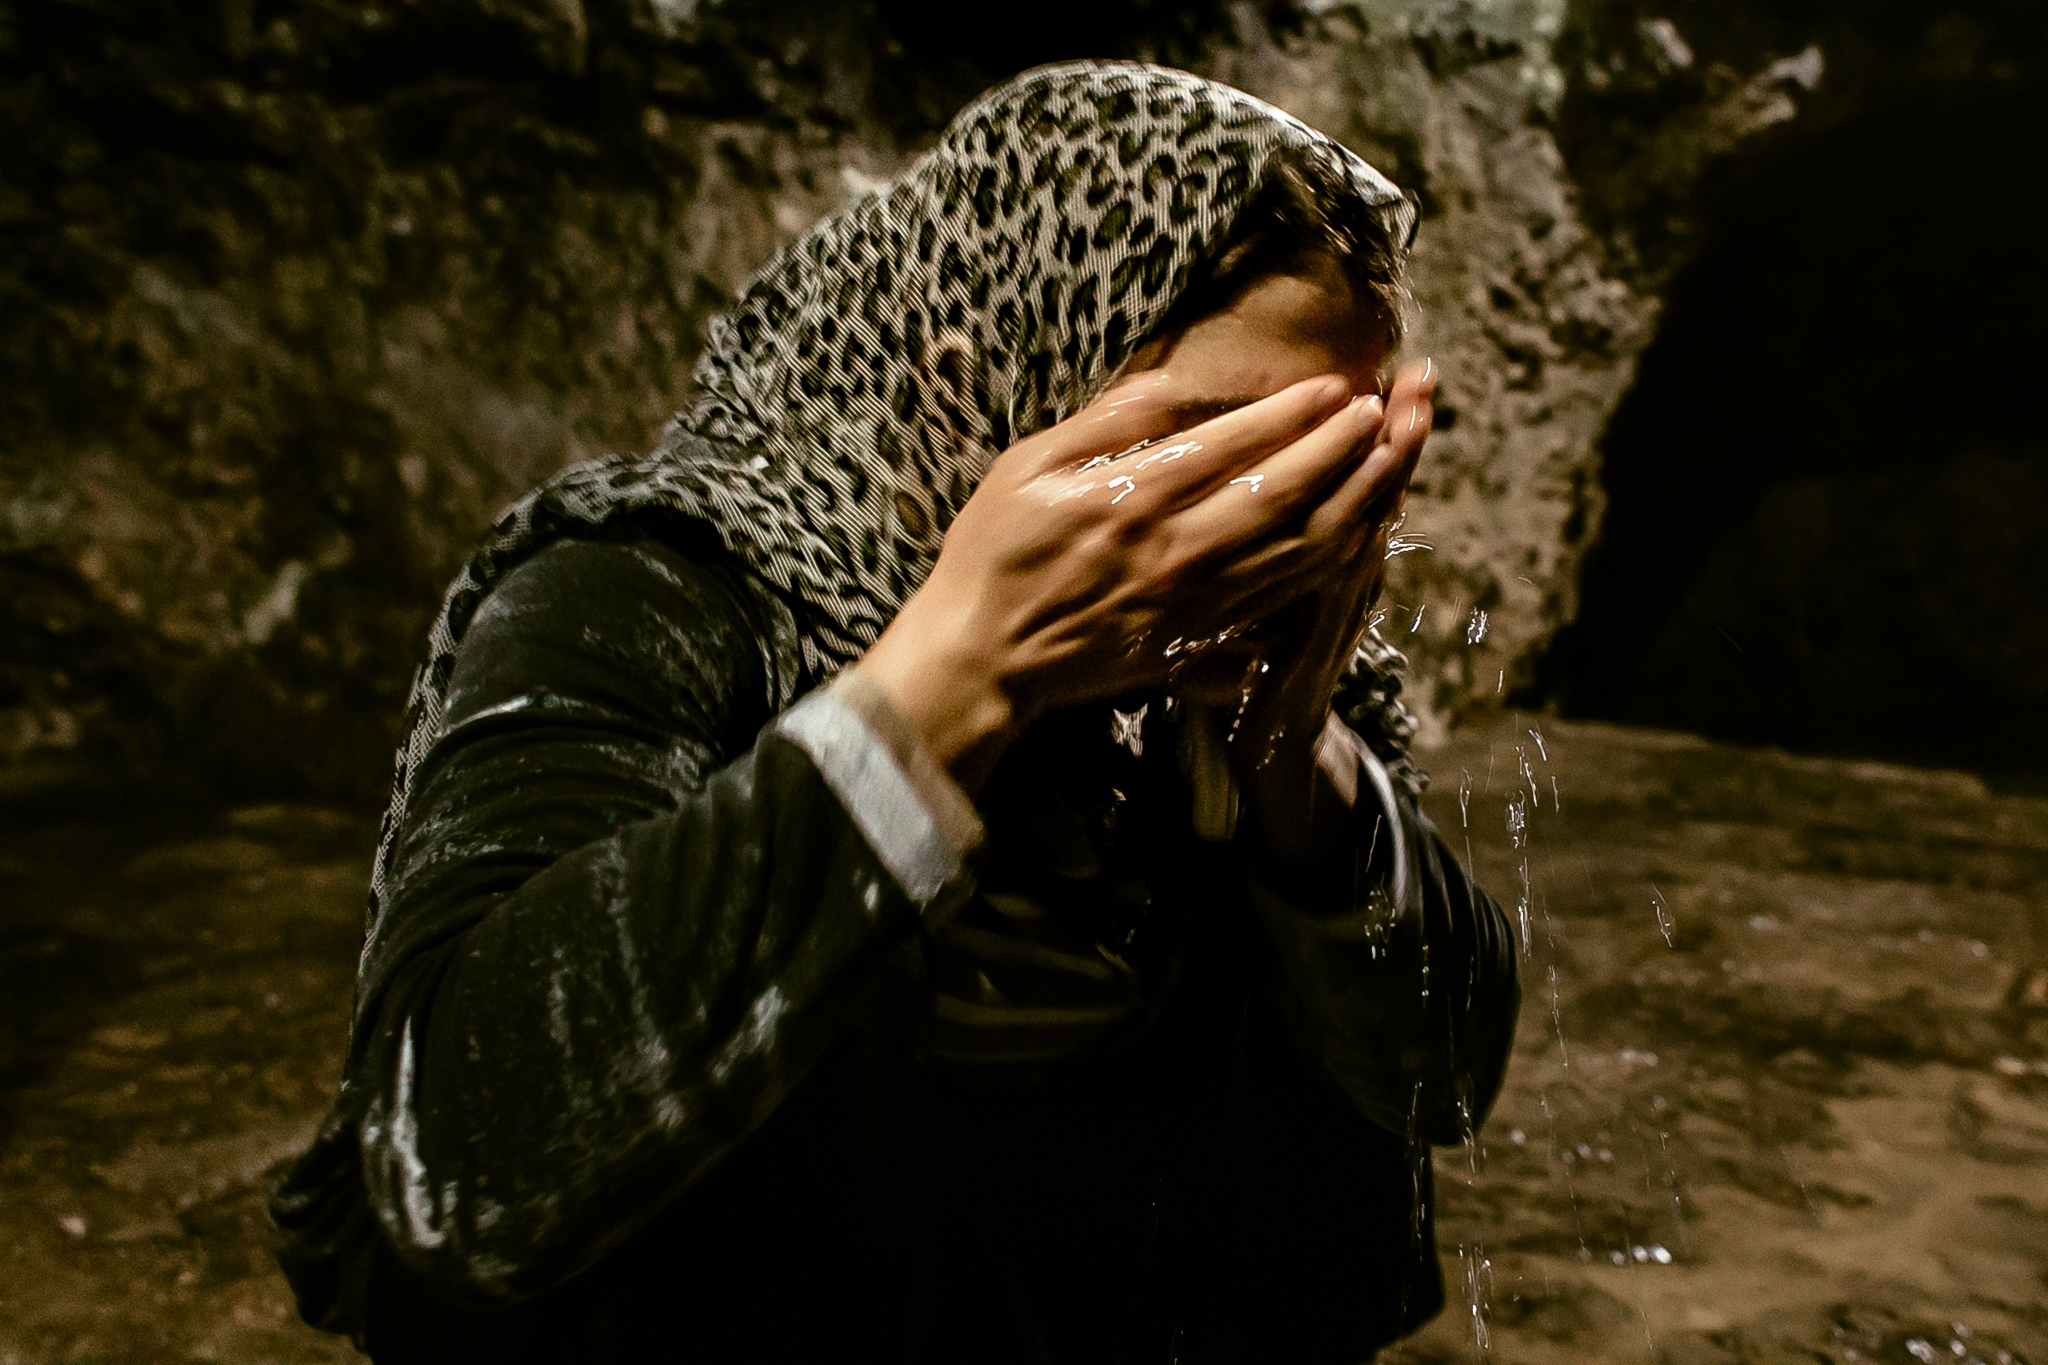 Turkia Hussein washes his face with the sacred waters of the Zamzam fountain. She is yazidi again.